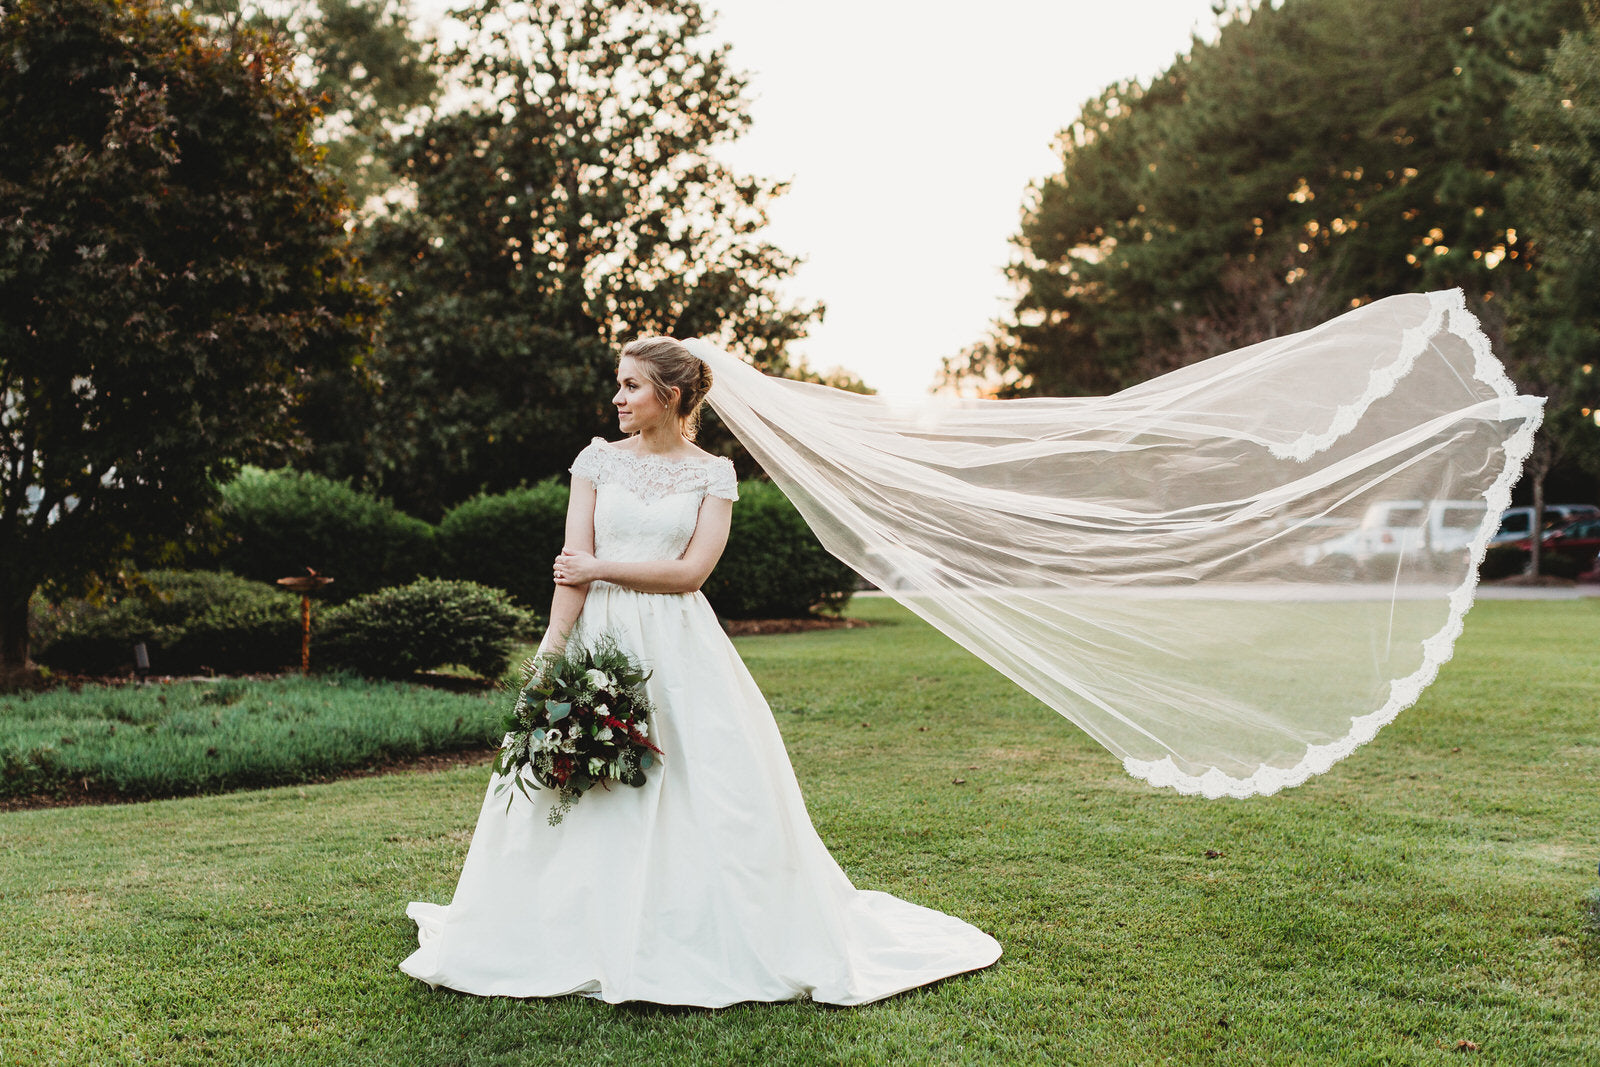 single tier wedding veil with lace blowing in wind